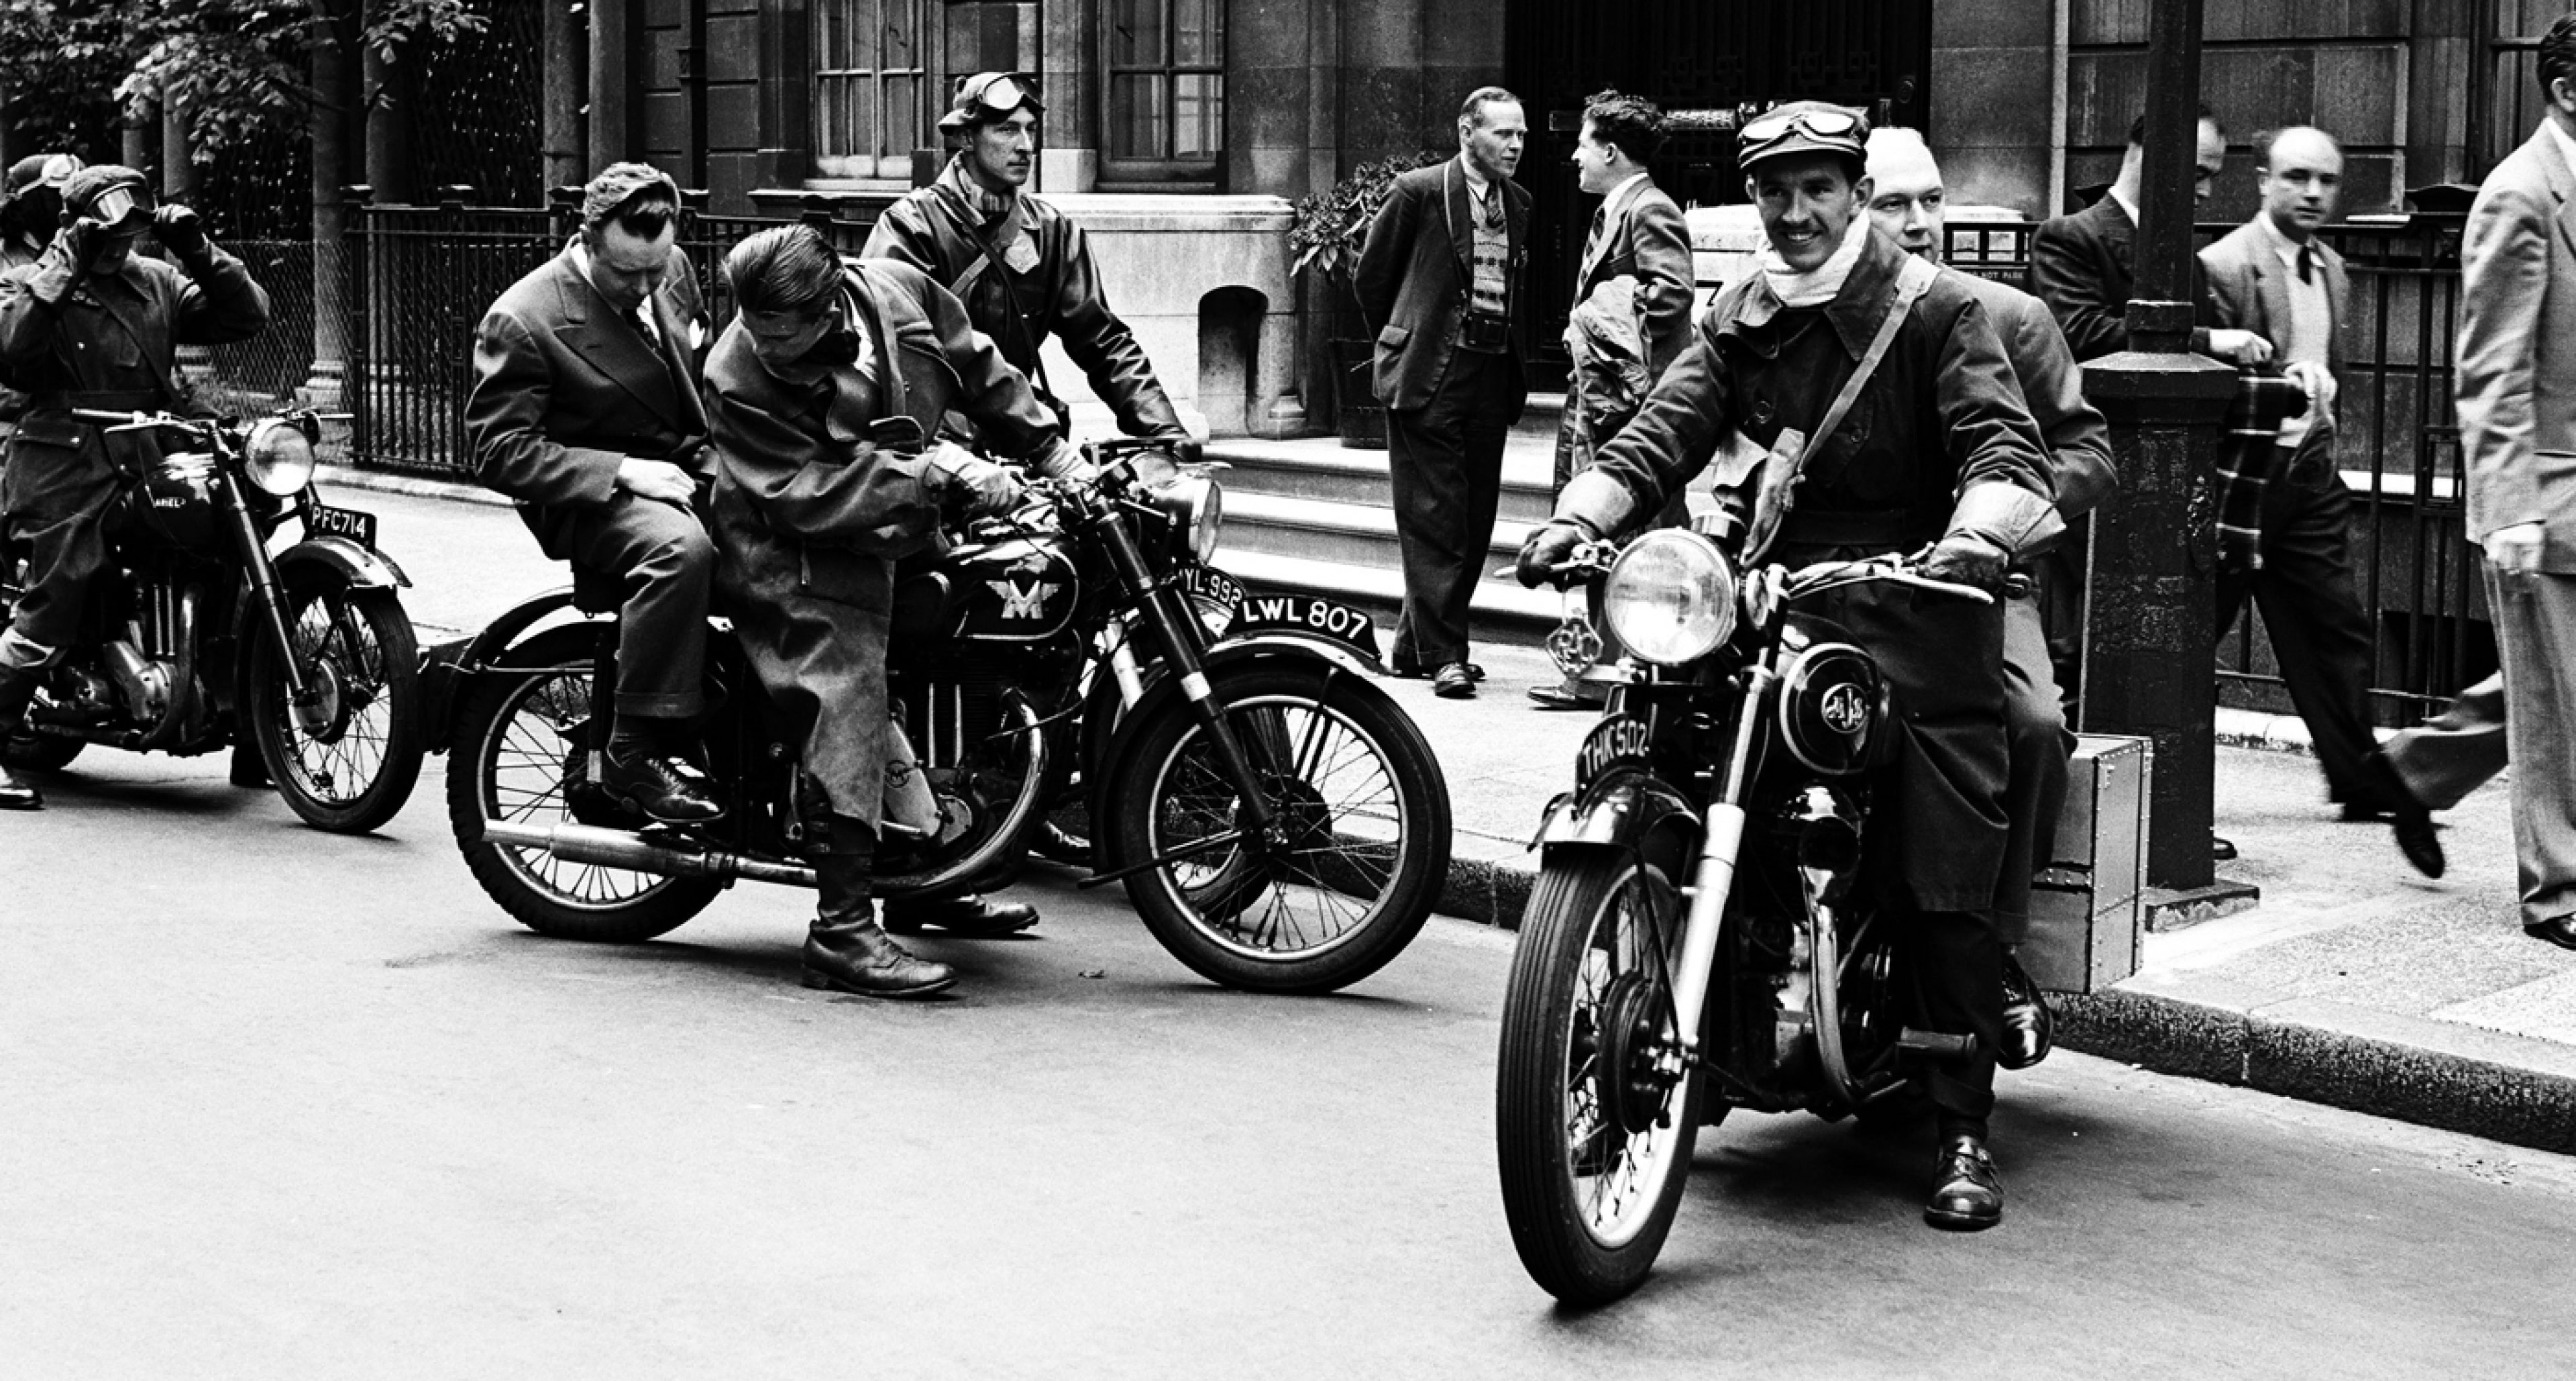 NBC News' Merrill 'Red' Mueller (left in suit) on a motorcycle during the coronation of Queen Elizabeth II on June 2, 1953 in London, England.